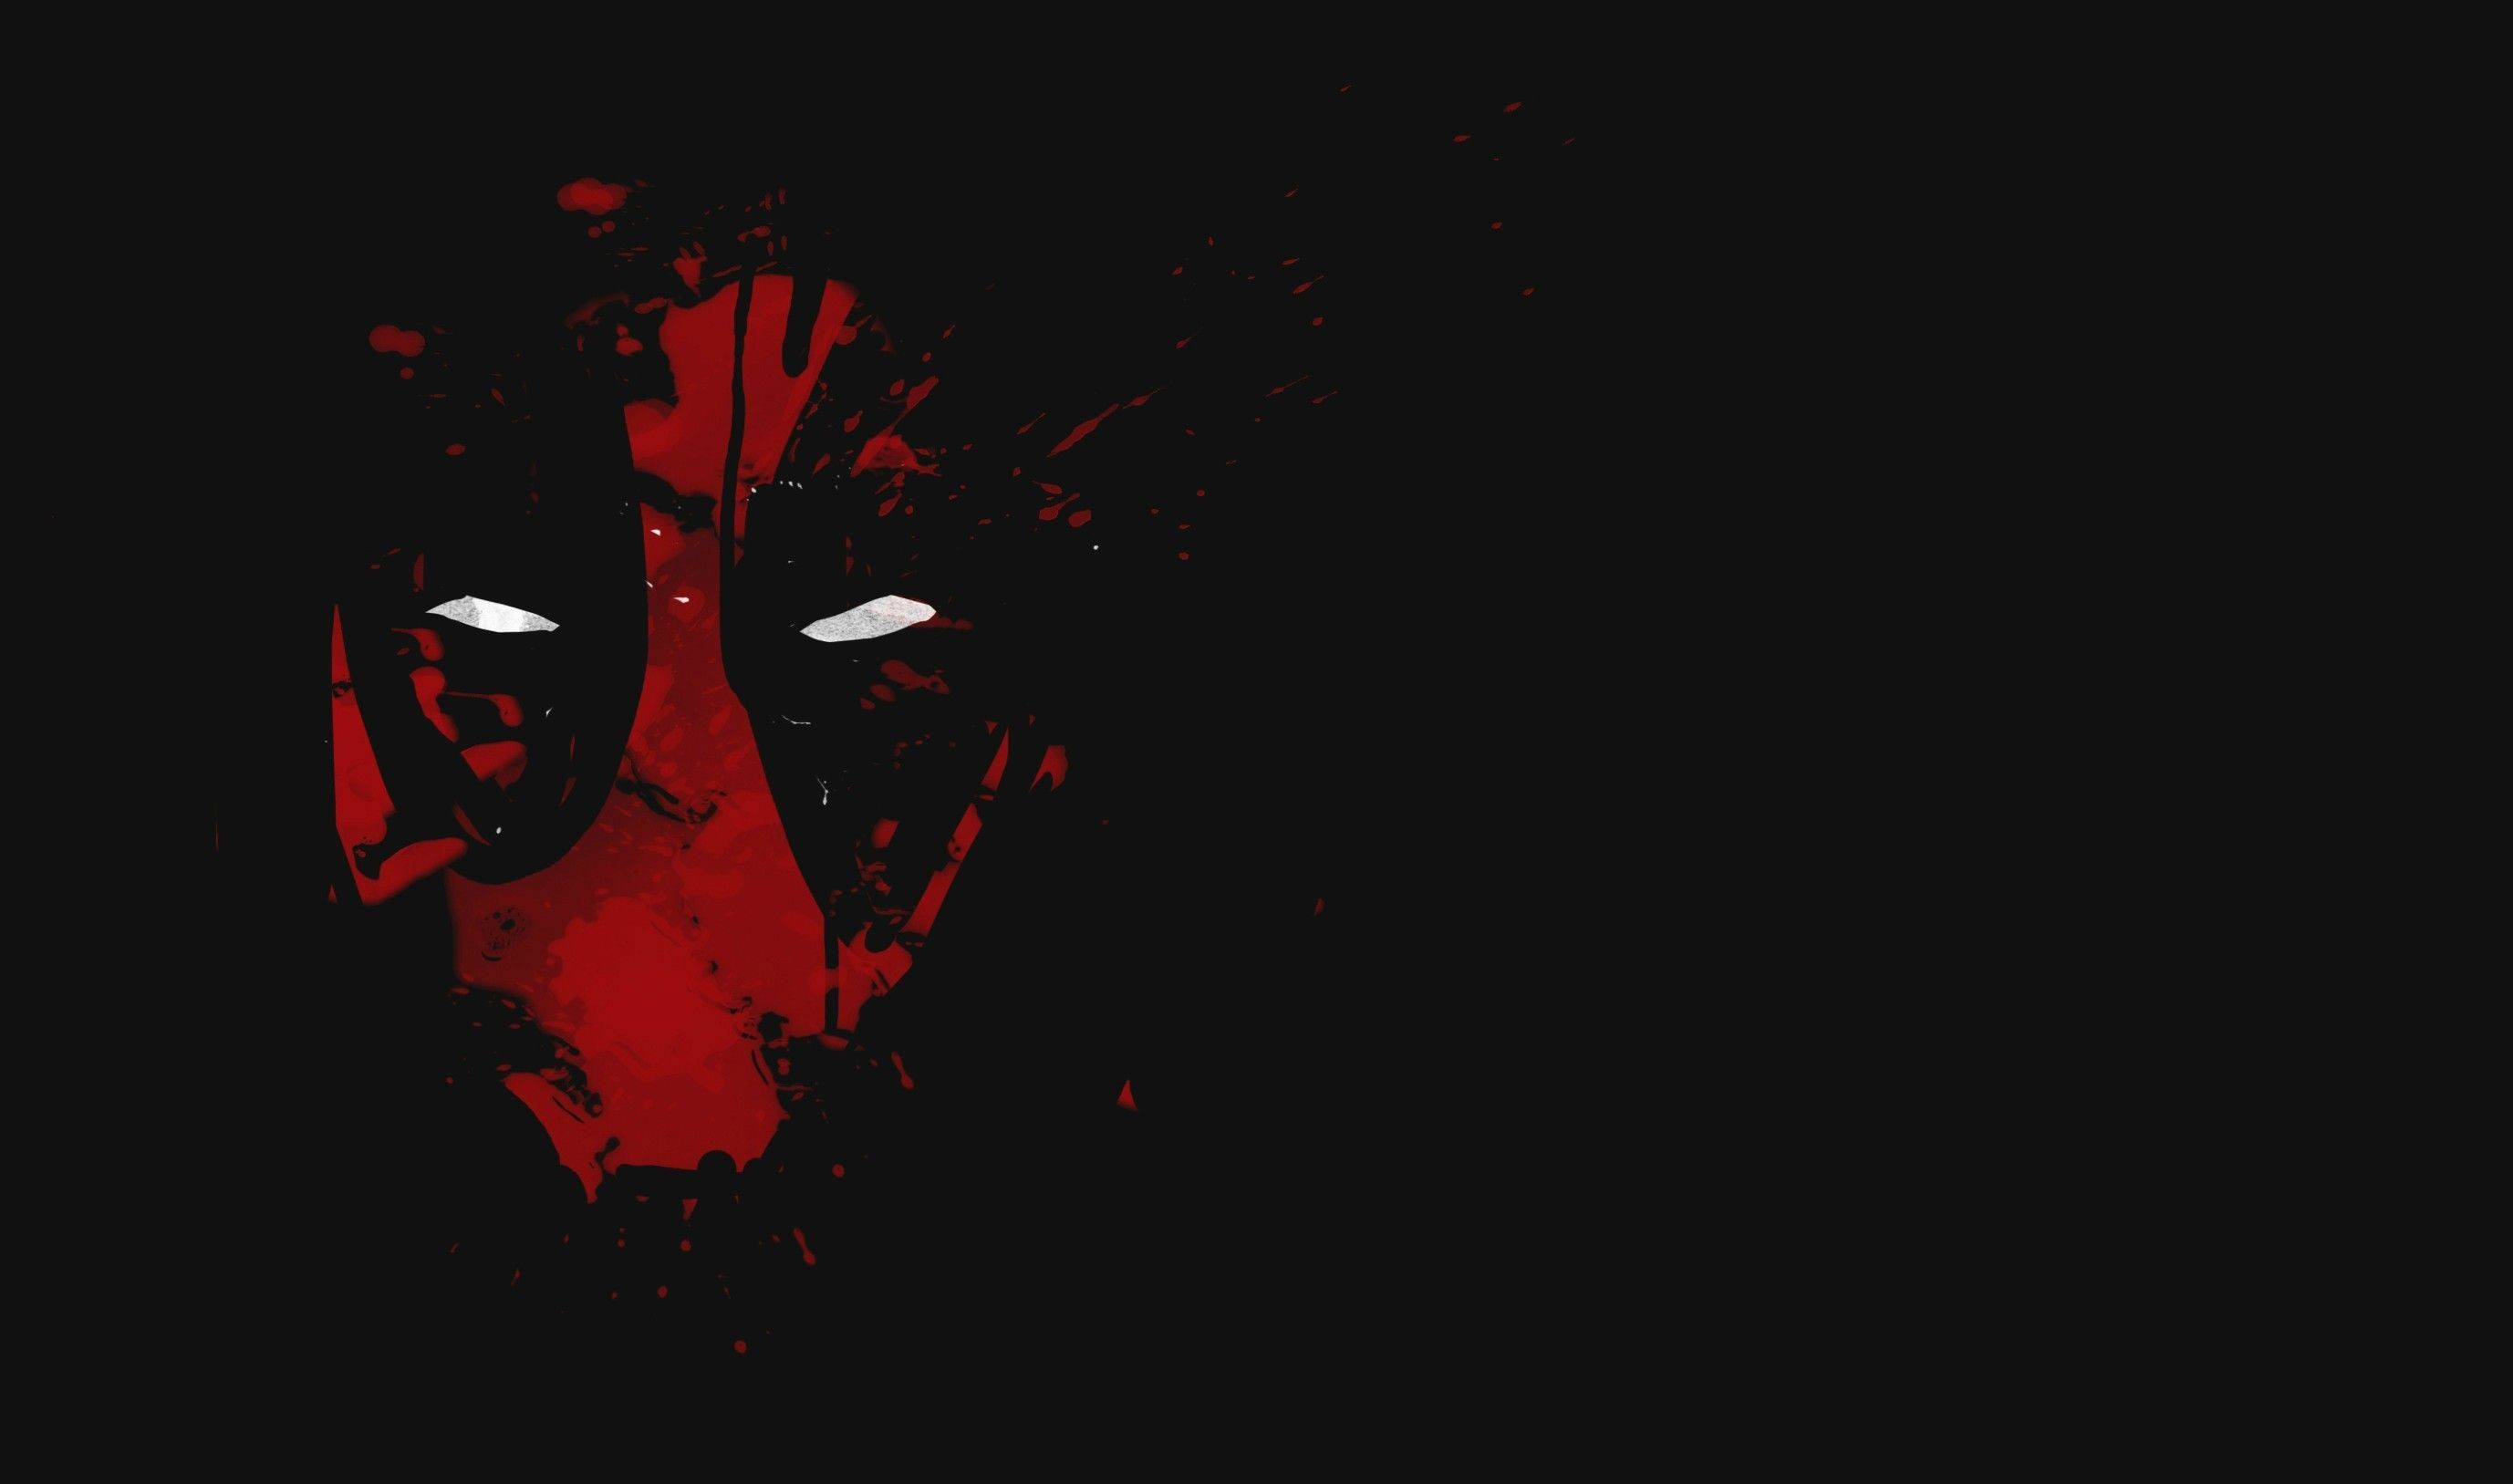 You guys want some Deadpool wallpapers? – Album on Imgur